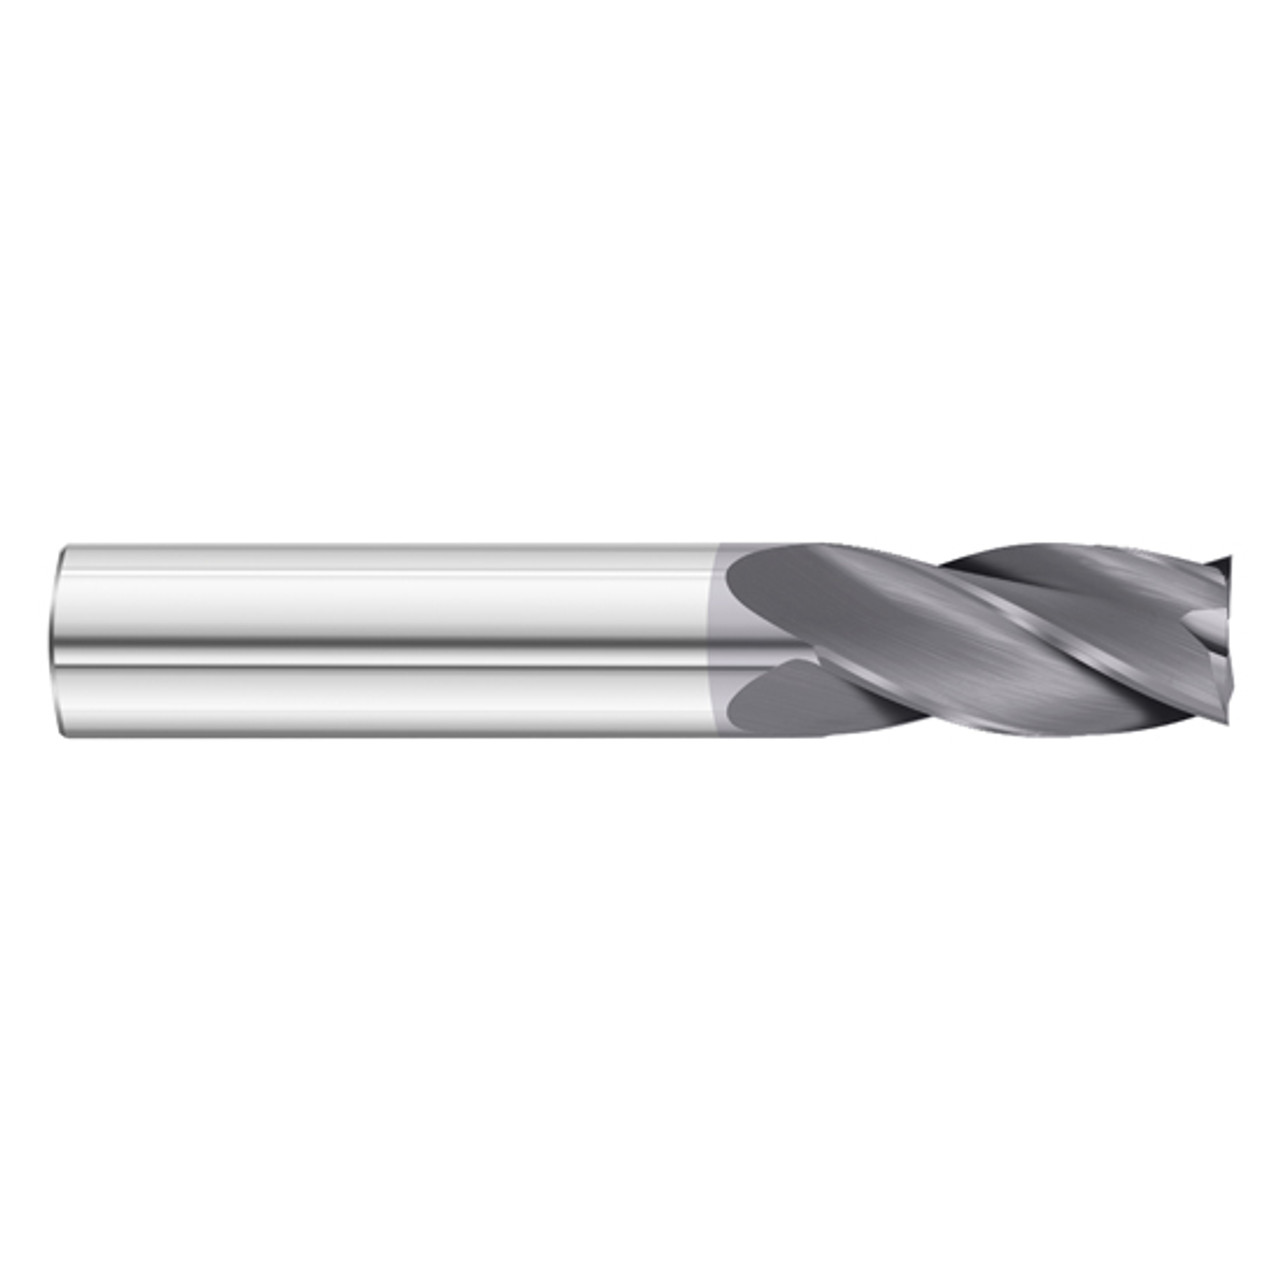 Fullerton Tool 27669 16mm Diameter x 16mm Shank x 30mm LOC x 150mm OAL 3 Flute Uncoated Solid Carbide Radius End Mill